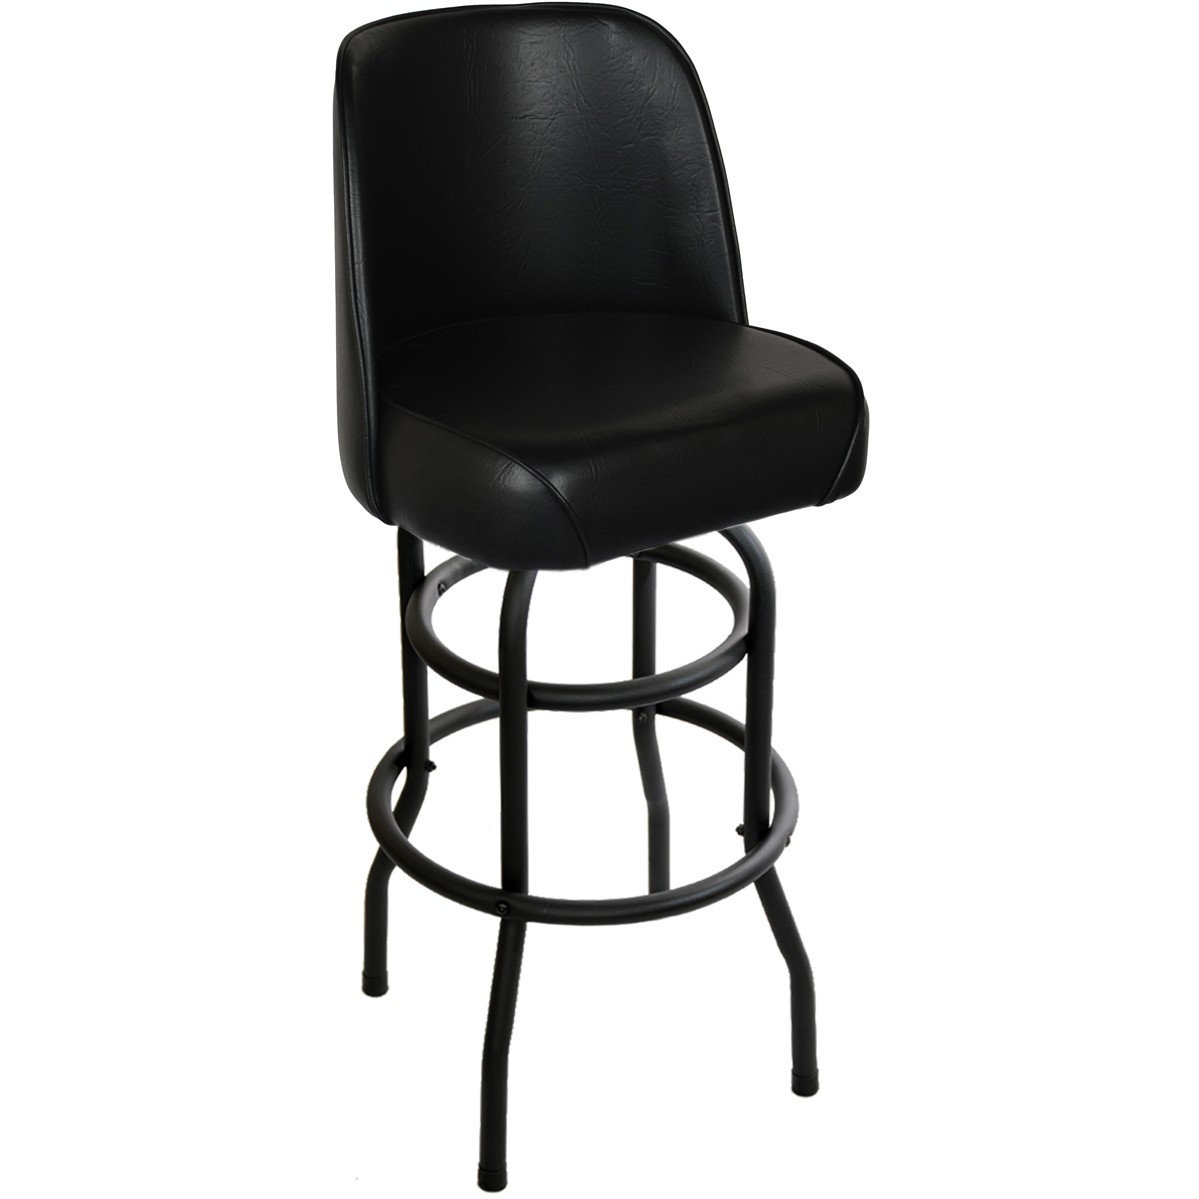 Double Ring mercial Grade Swivel Bar Stool